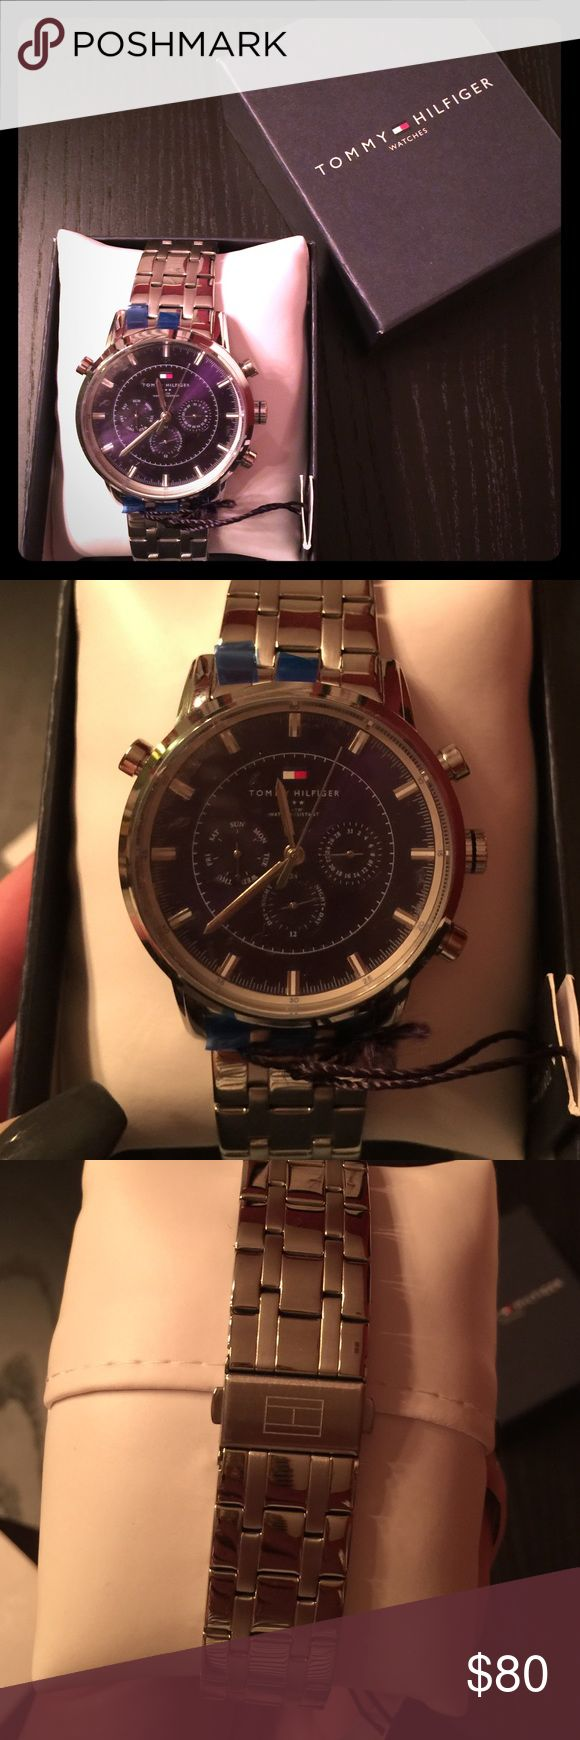 NWT Tommy Hilfiger Men's watch Brand new with the stickers and tag still on. Comes with original packaging. Could be a great Christmas gift!! Tommy Hilfiger Accessories Watches